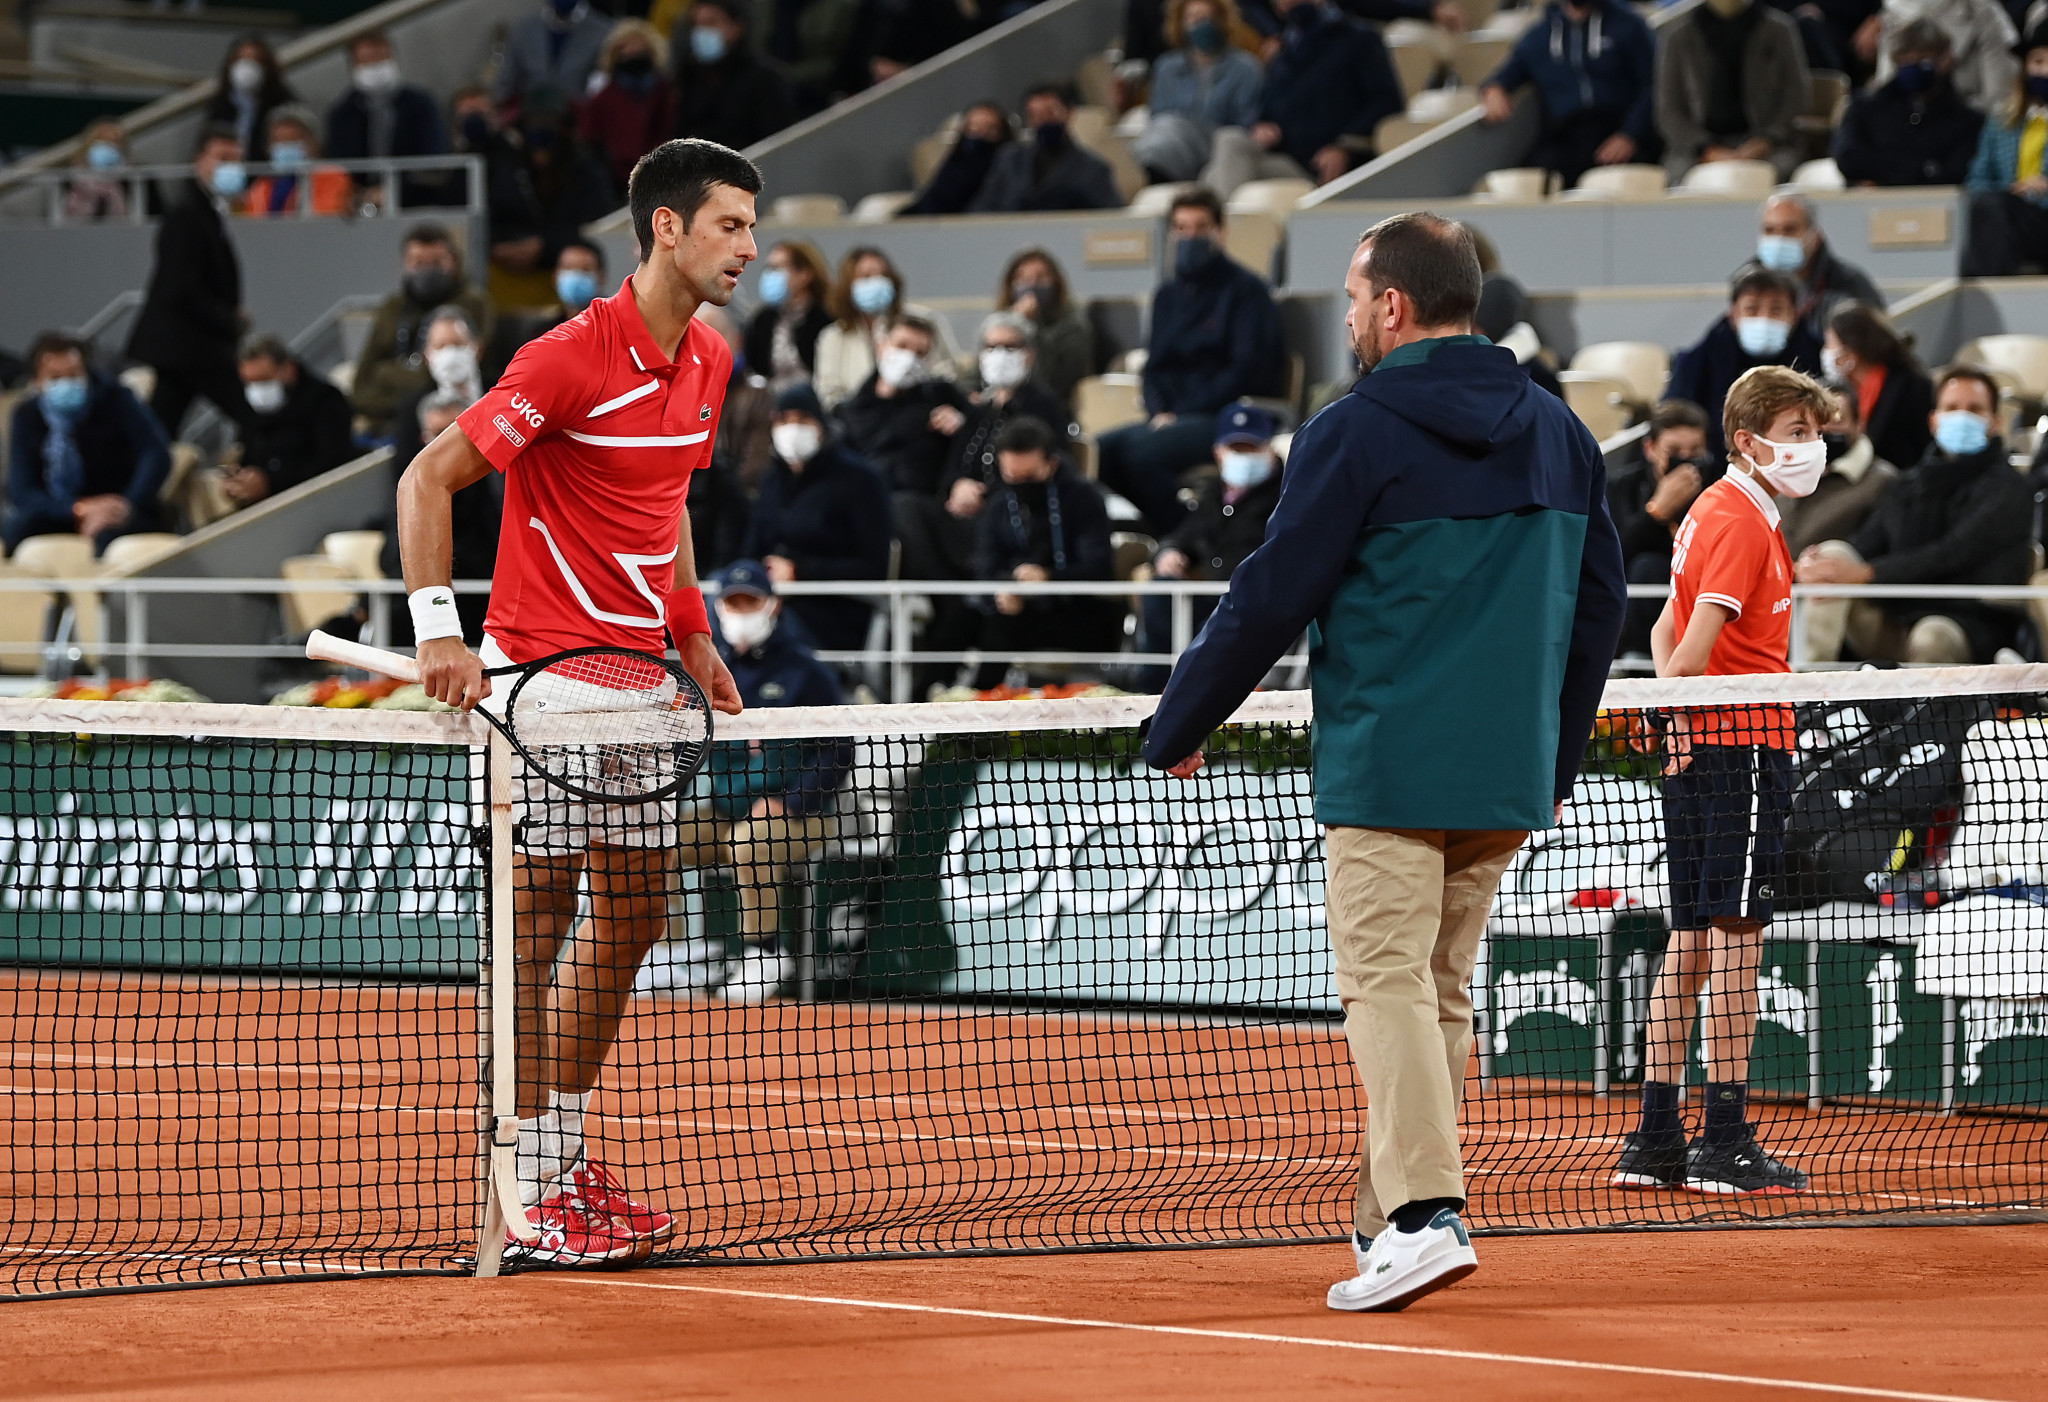 Serbia's Djokovic questions the umpire's call to overturn the line judge's decision and give Nadal a chance to serve for the title ©Getty Images